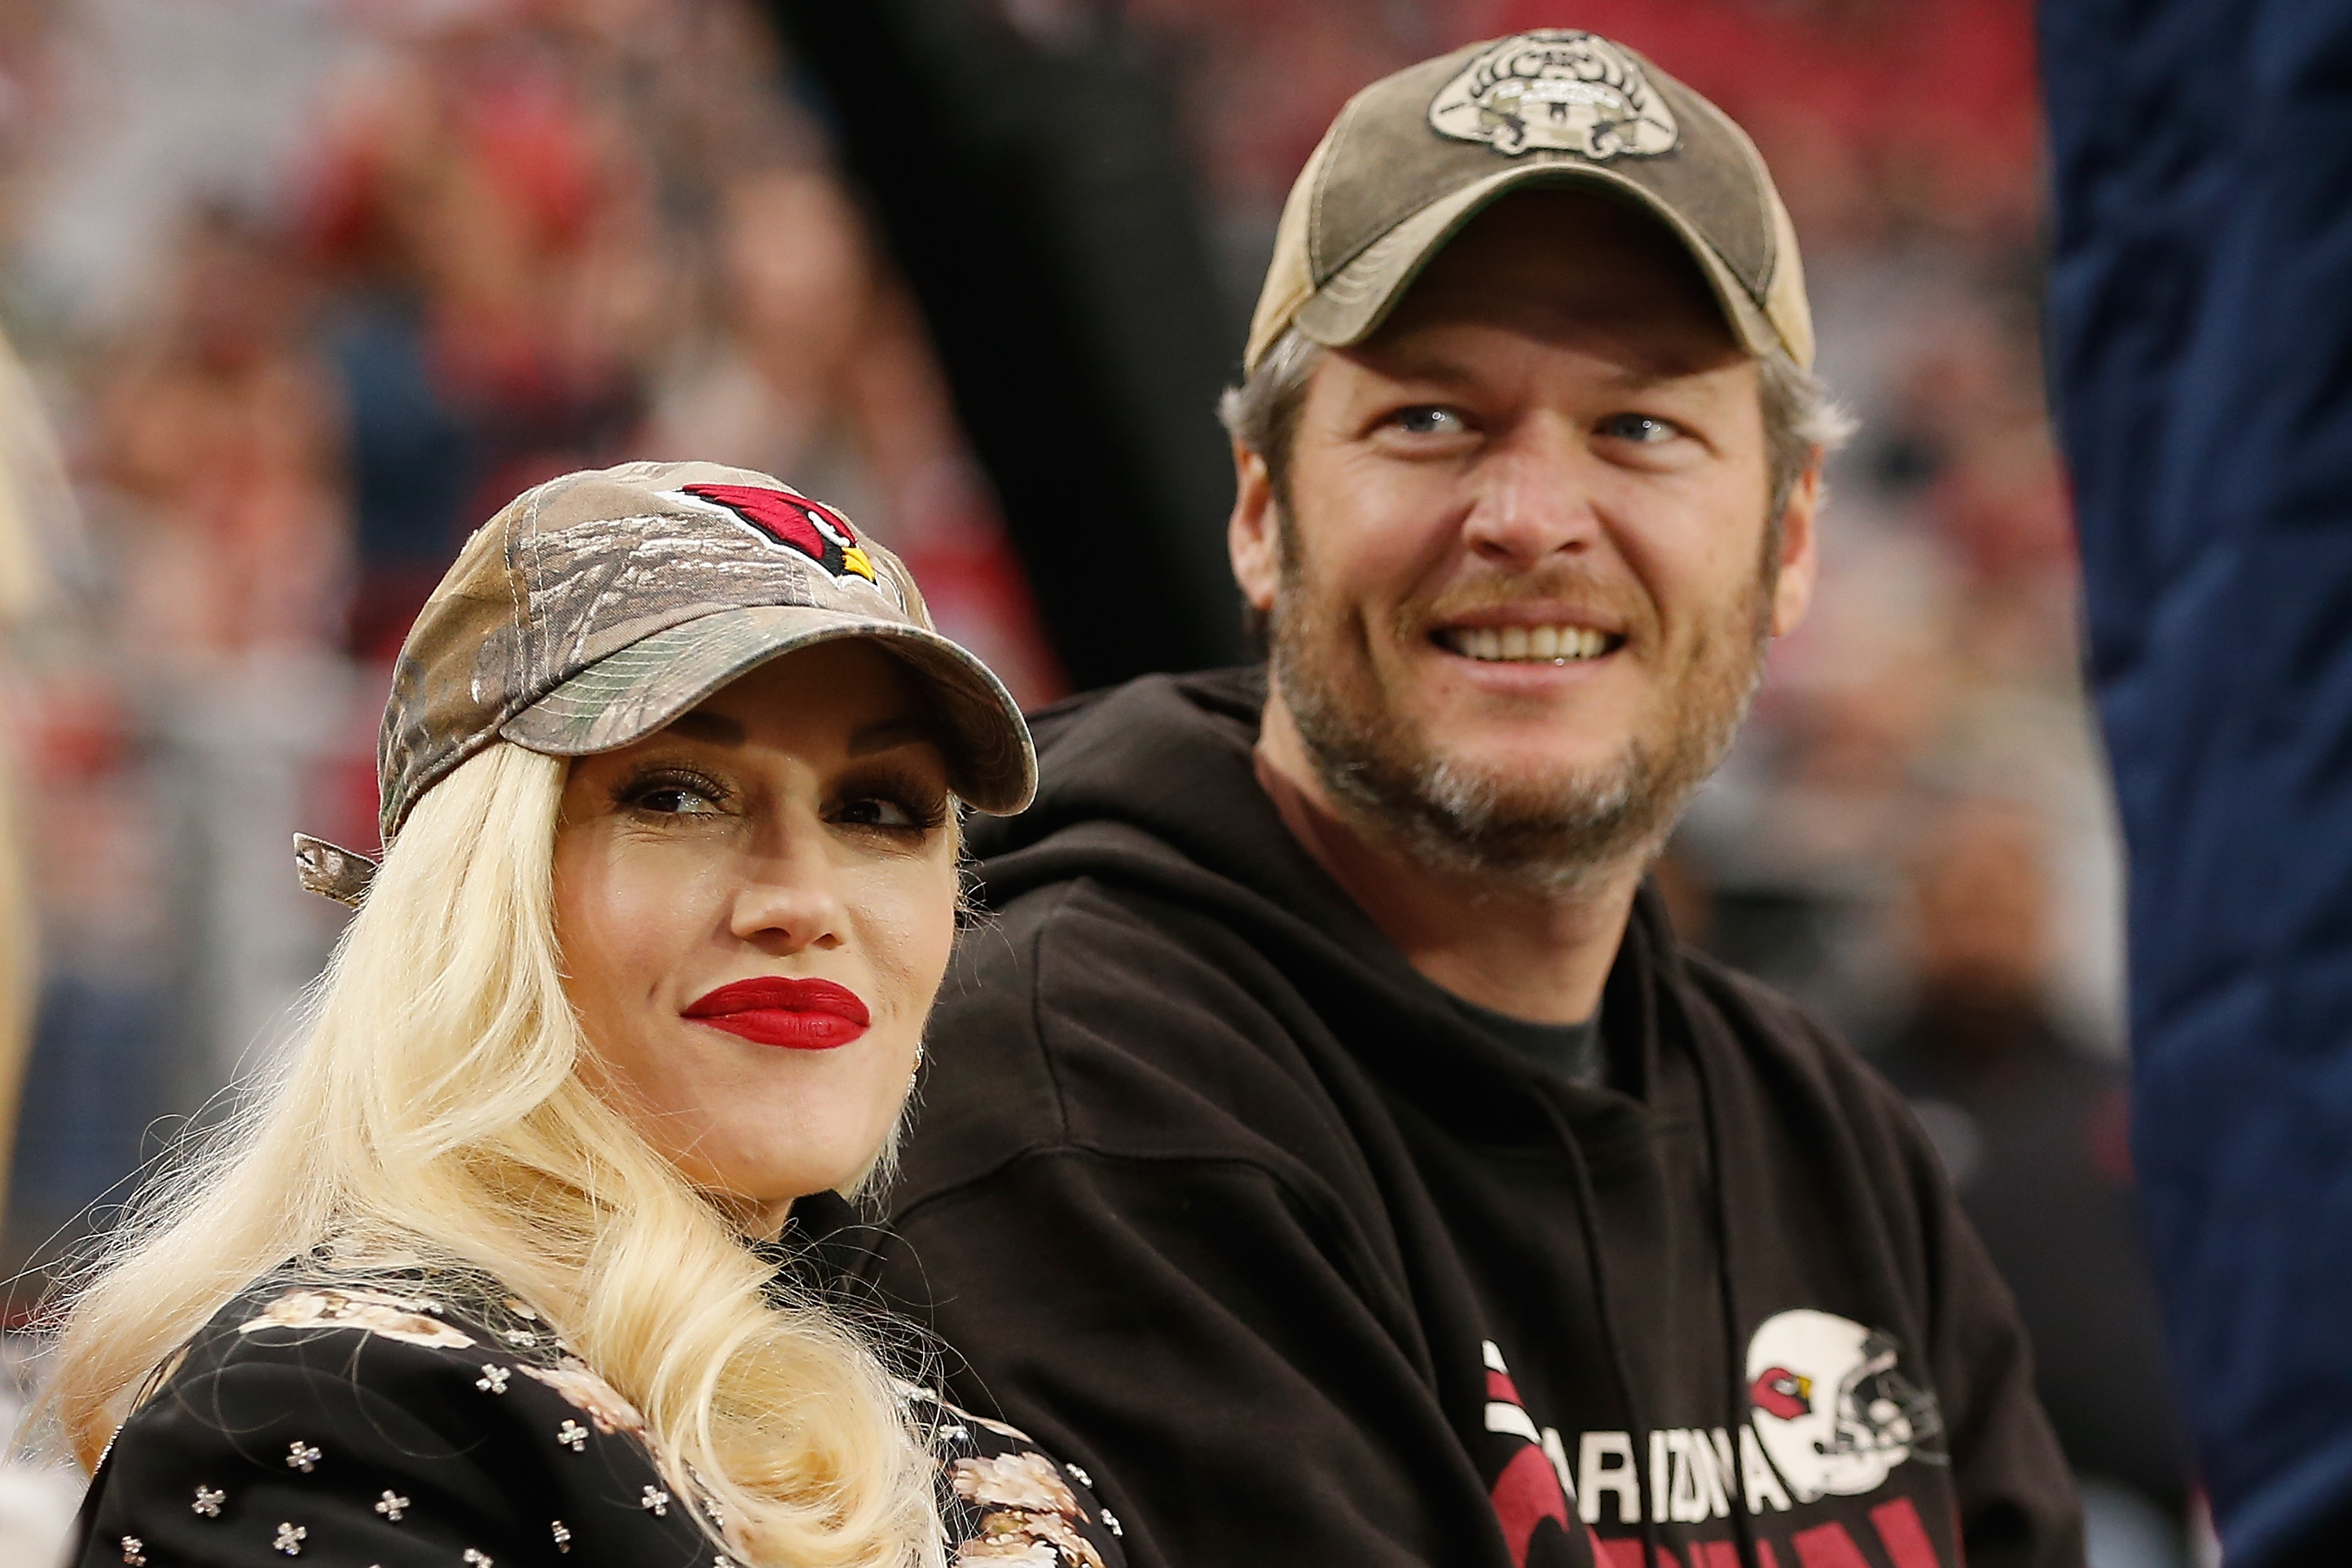 Blake Shelton & Gwen Stefani: He Reveals Whether They're Having A Baby